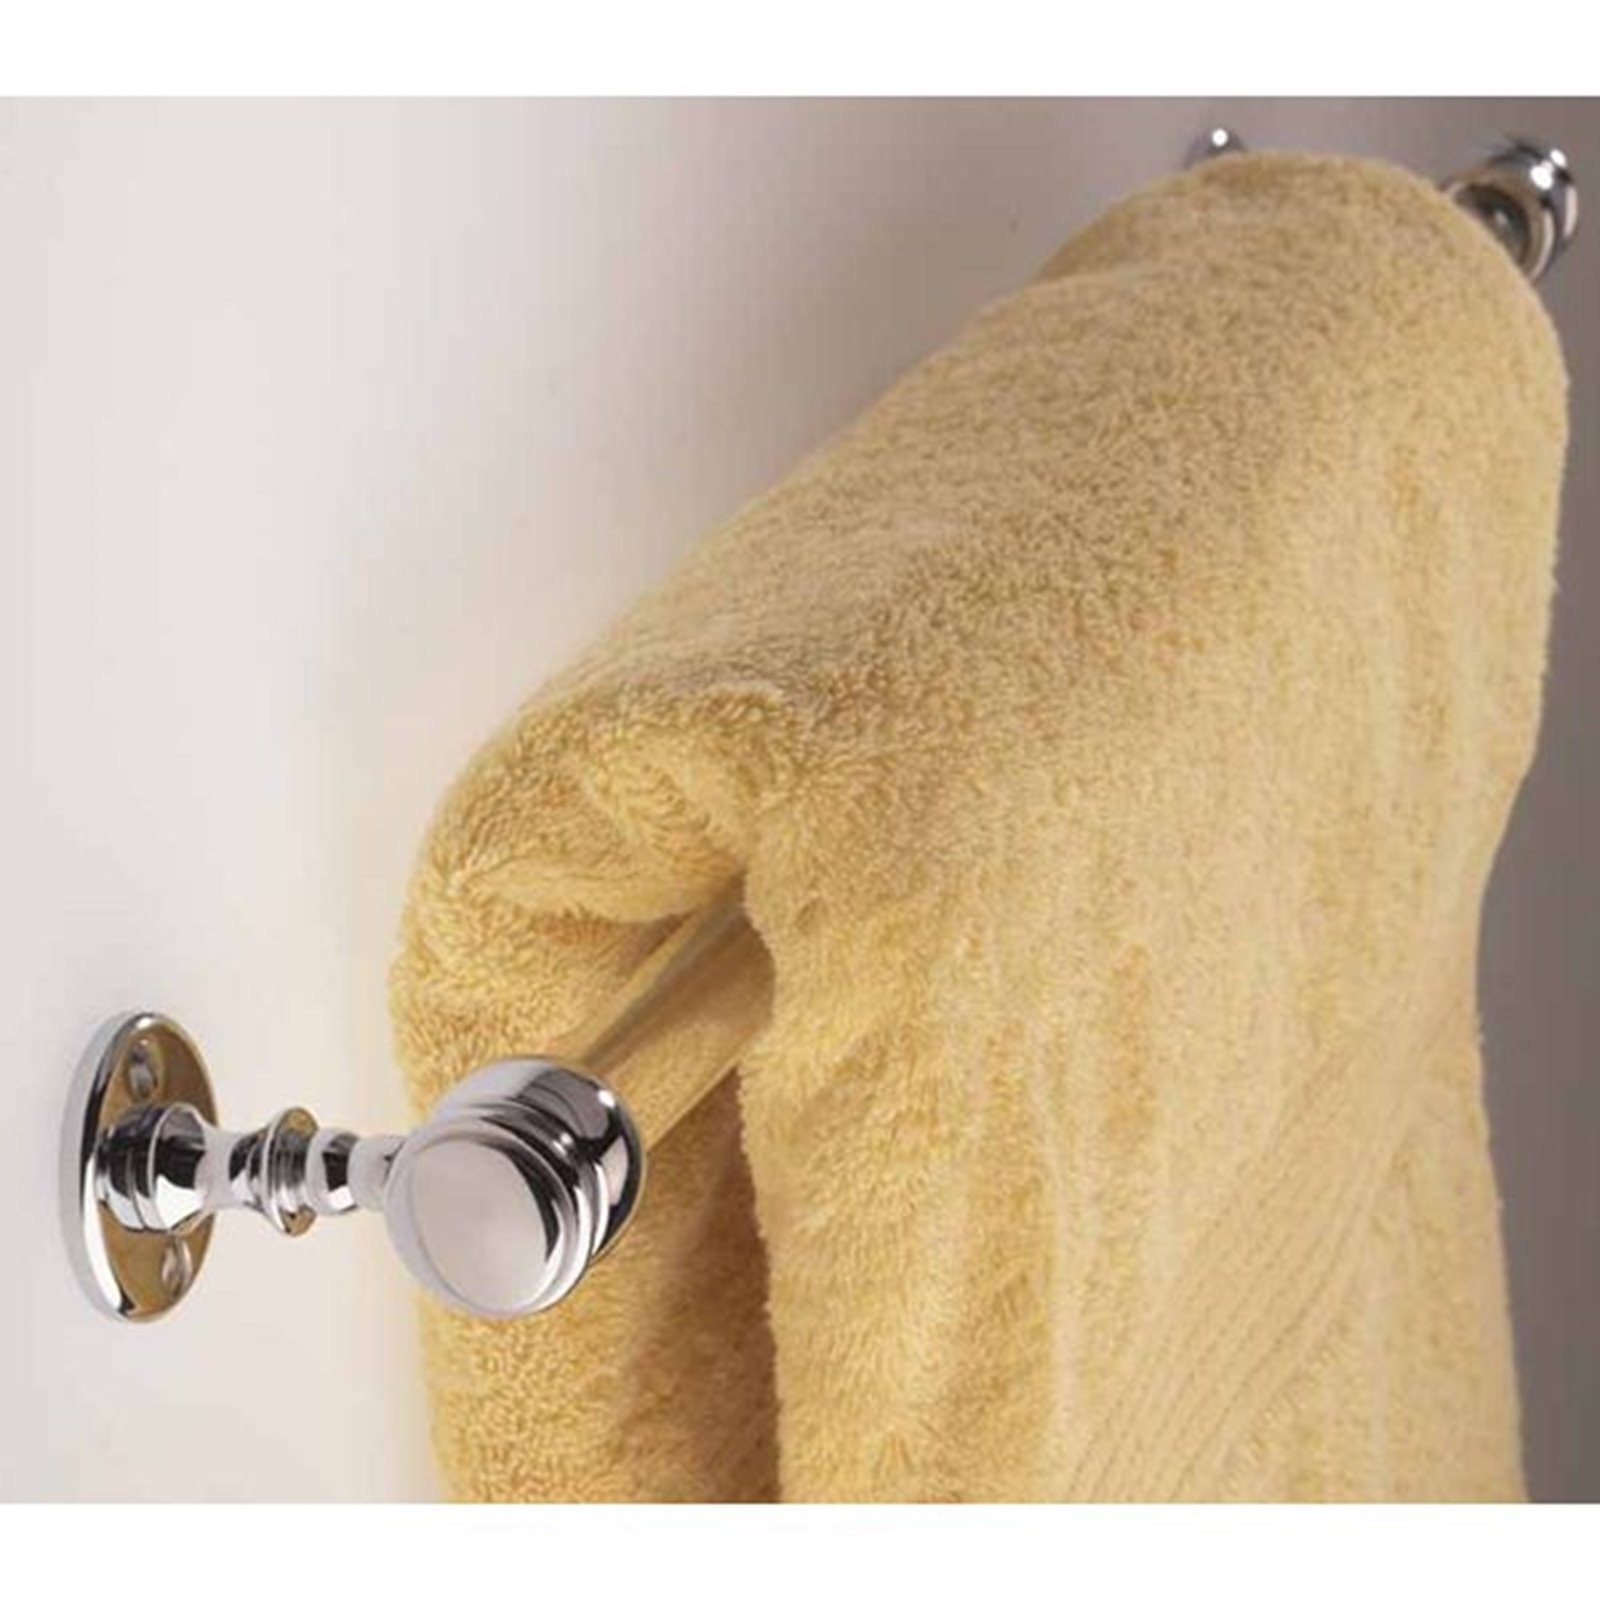 Handmade Bathroom Single Towel Rail  Image